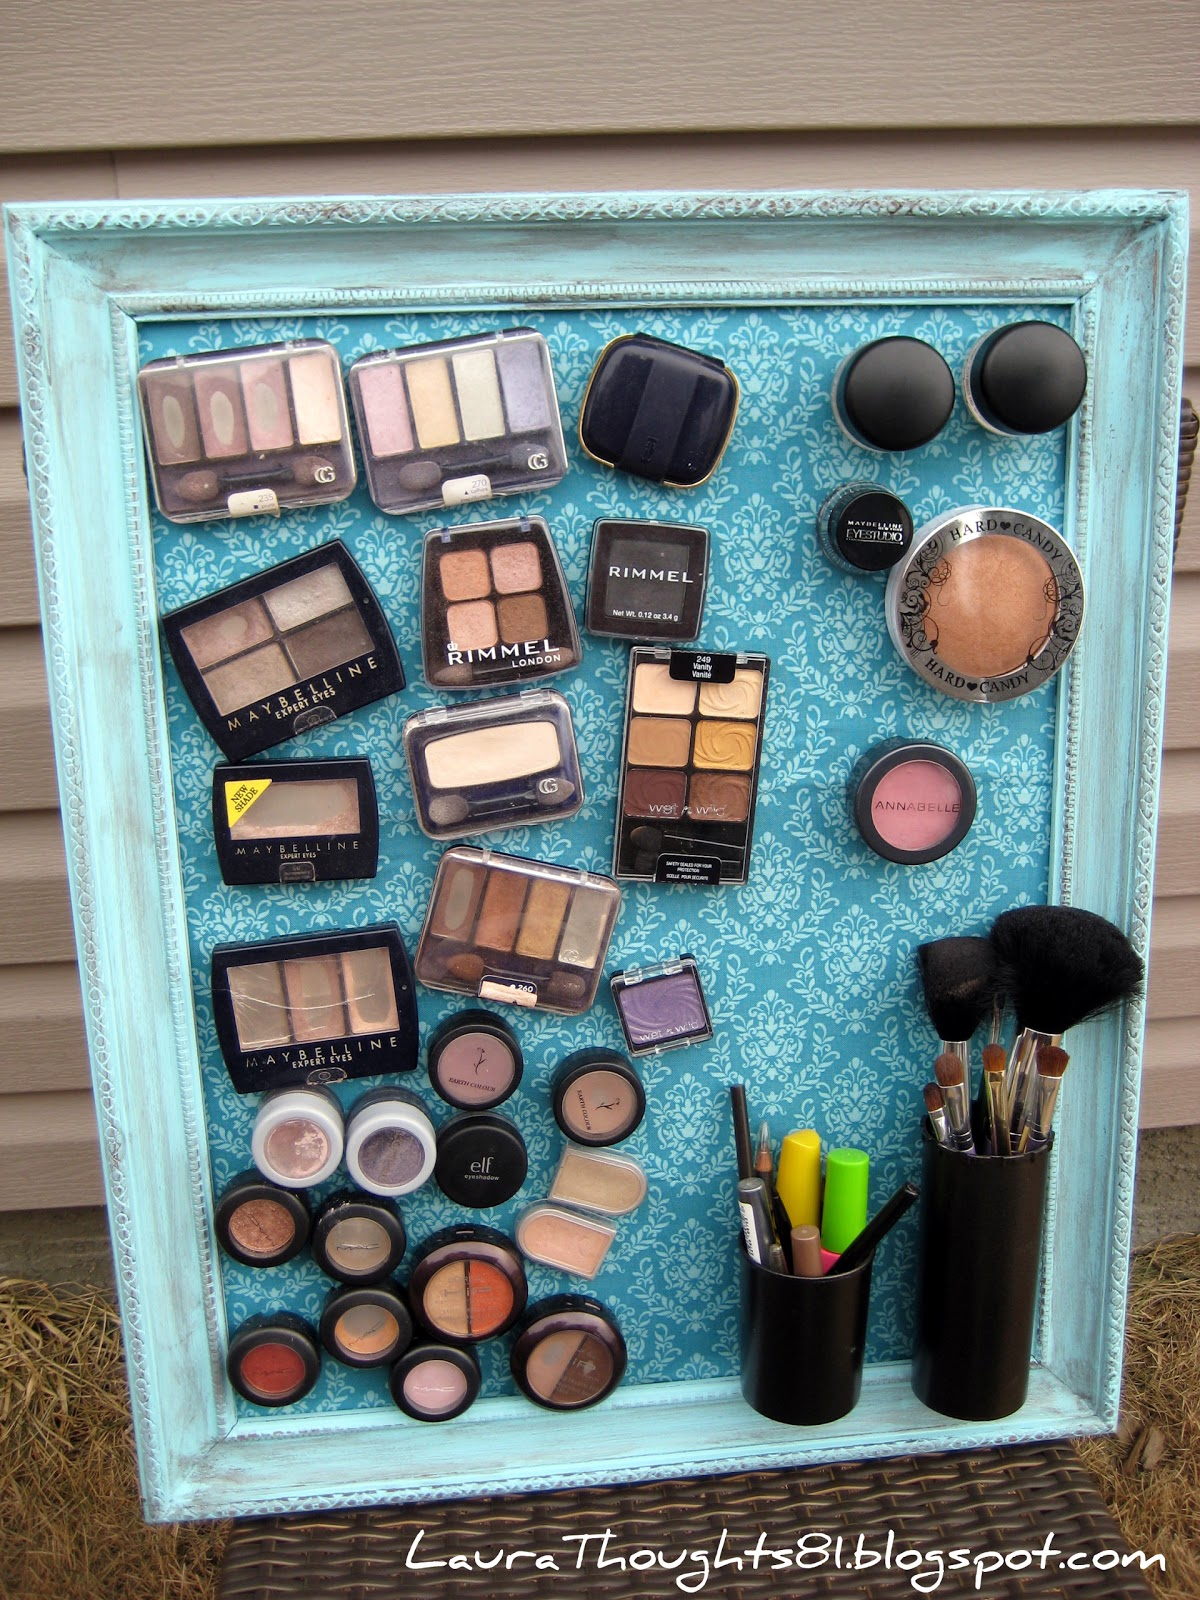 Magnetic Board | Makeup Organizers And Storage Ideas For Makeup Junkies